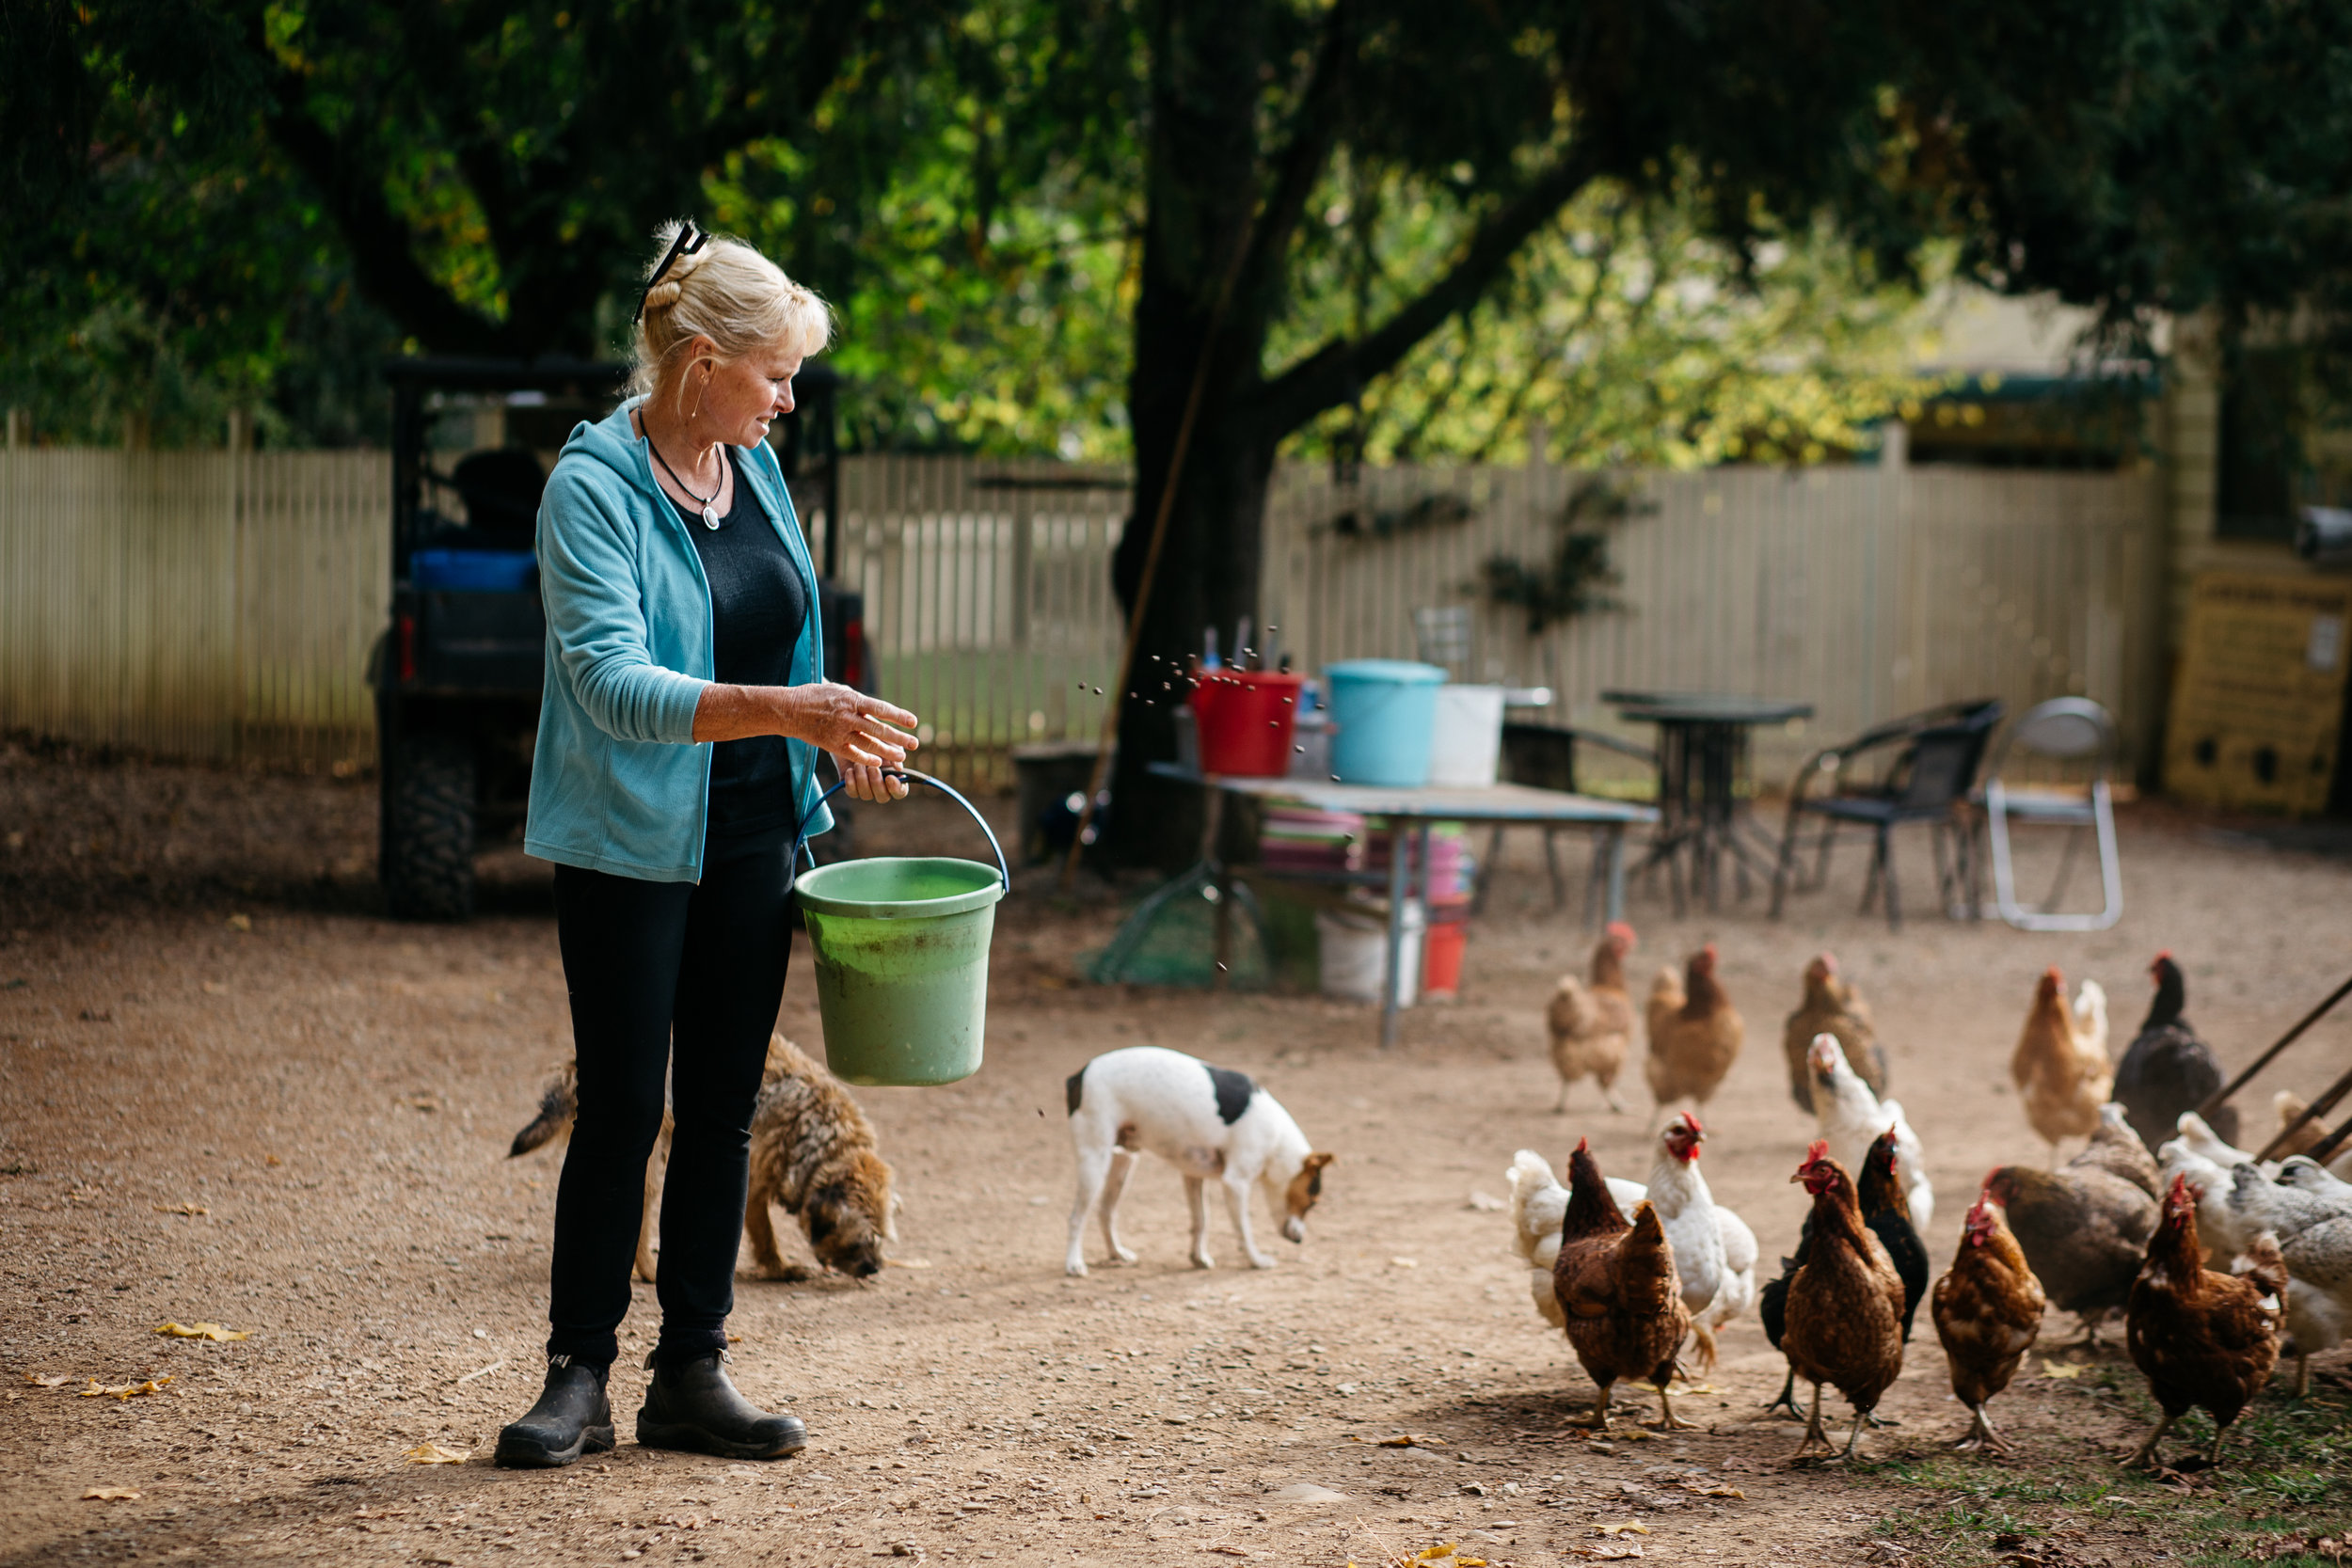 Sally Hall feeding chooks on her farm, Harrietville (Victoria), Photographer: Catherine Forge, Source: Museums Victoria [MM 145576:  https://collections.museumvictoria.com.au/items/2241610 ].